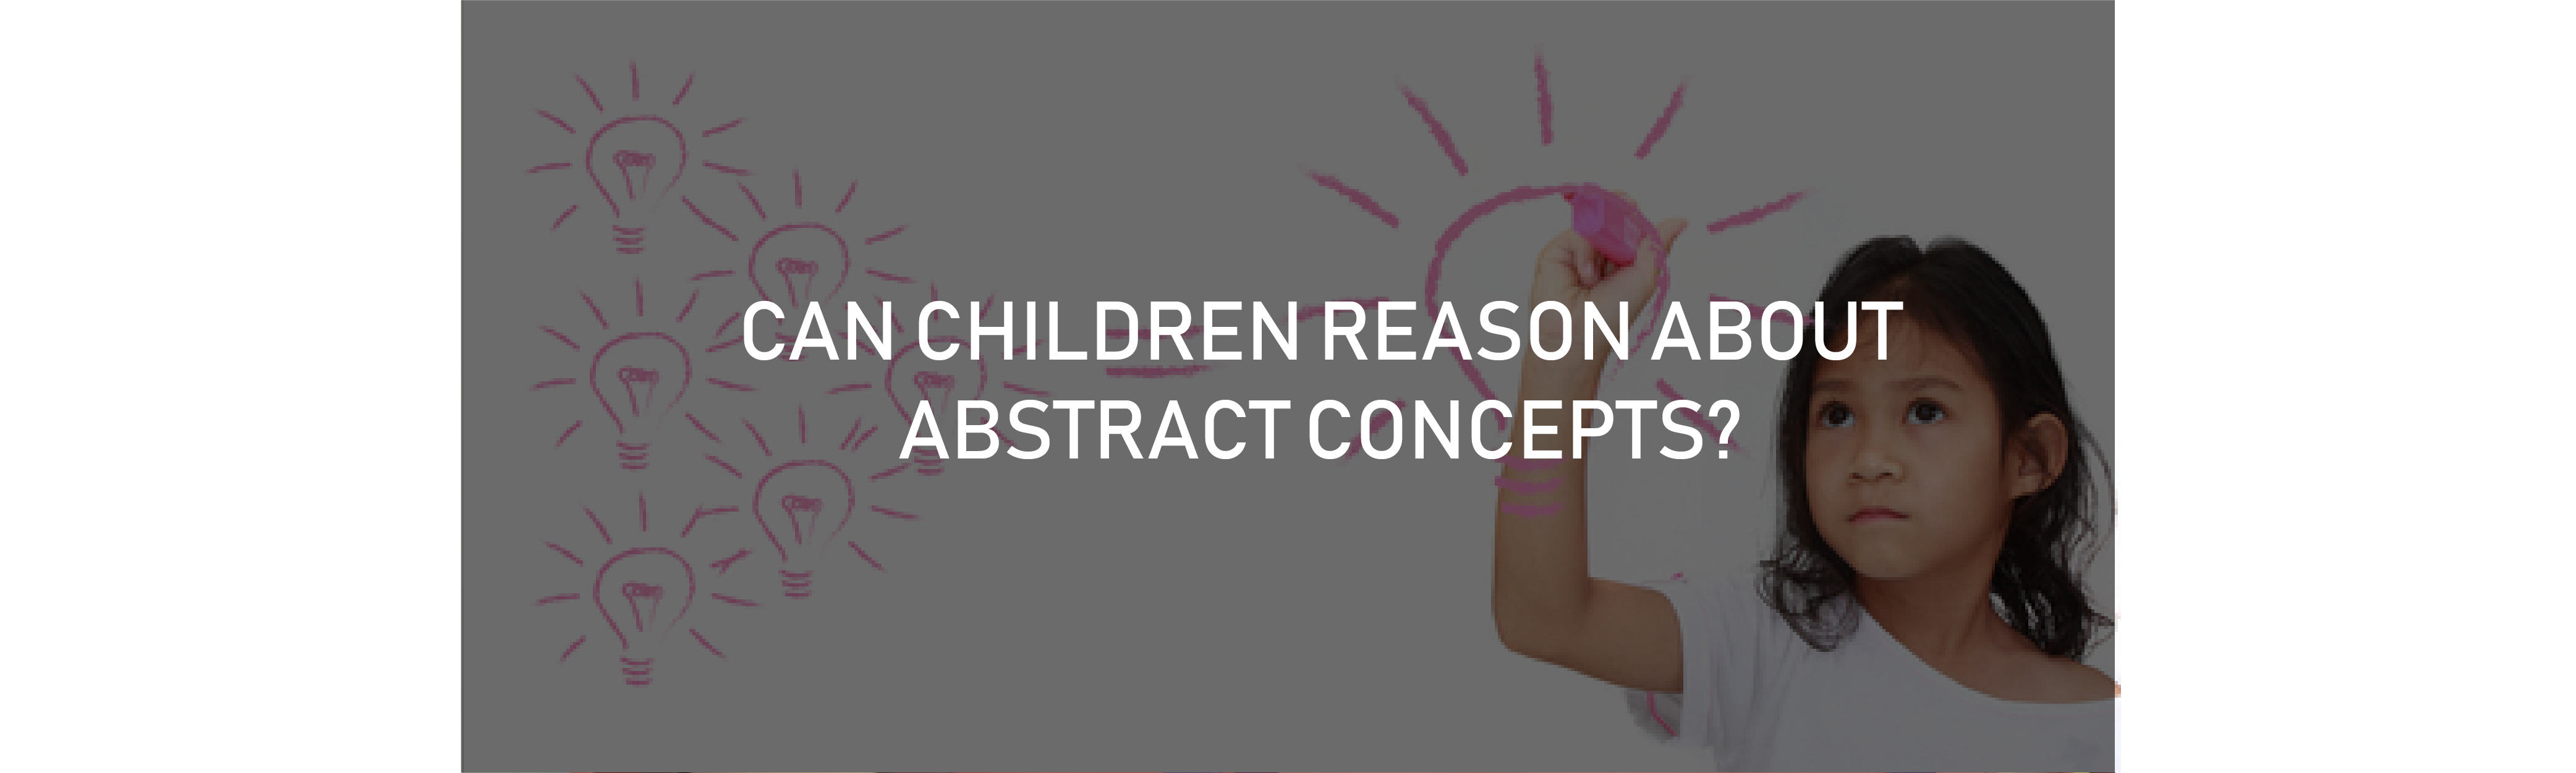 Children's Reasoning and Concepts